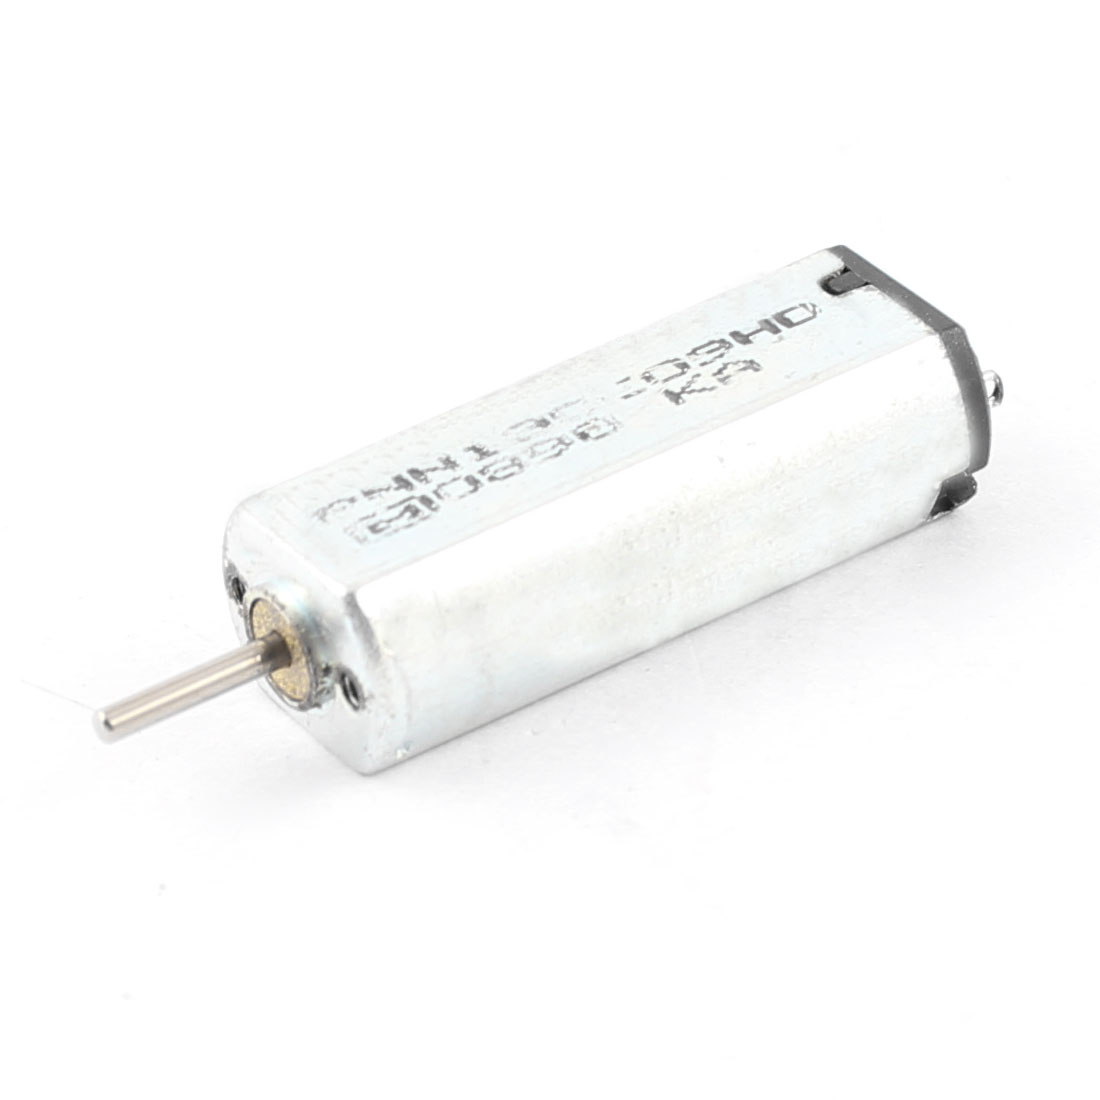 1mm Shaft Electric Micro Motor 32000RPM DC 3V 0.05A for DIY Smart Car